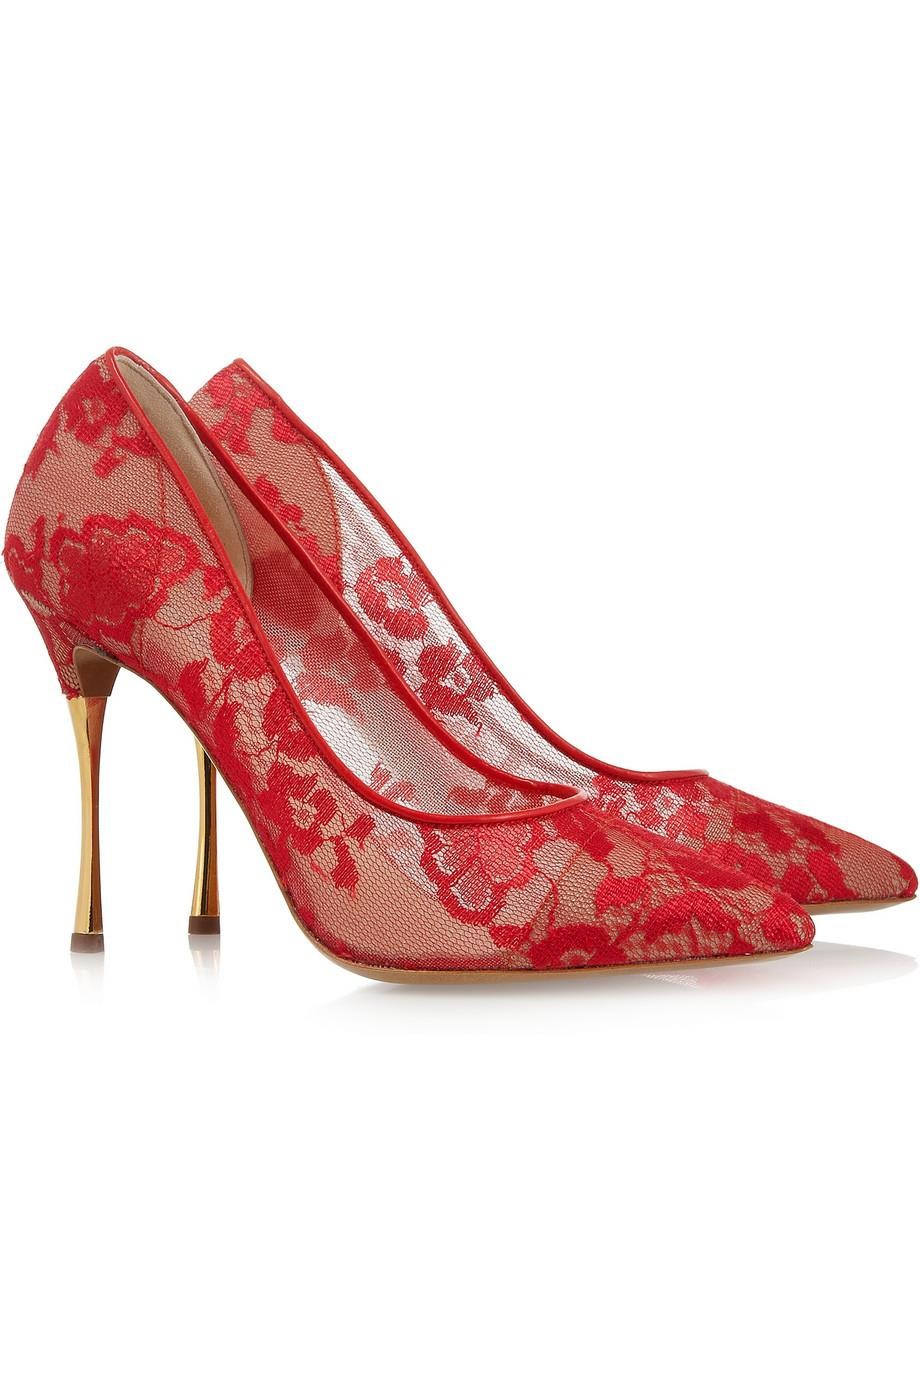 red lace wedding shoes photo - 1